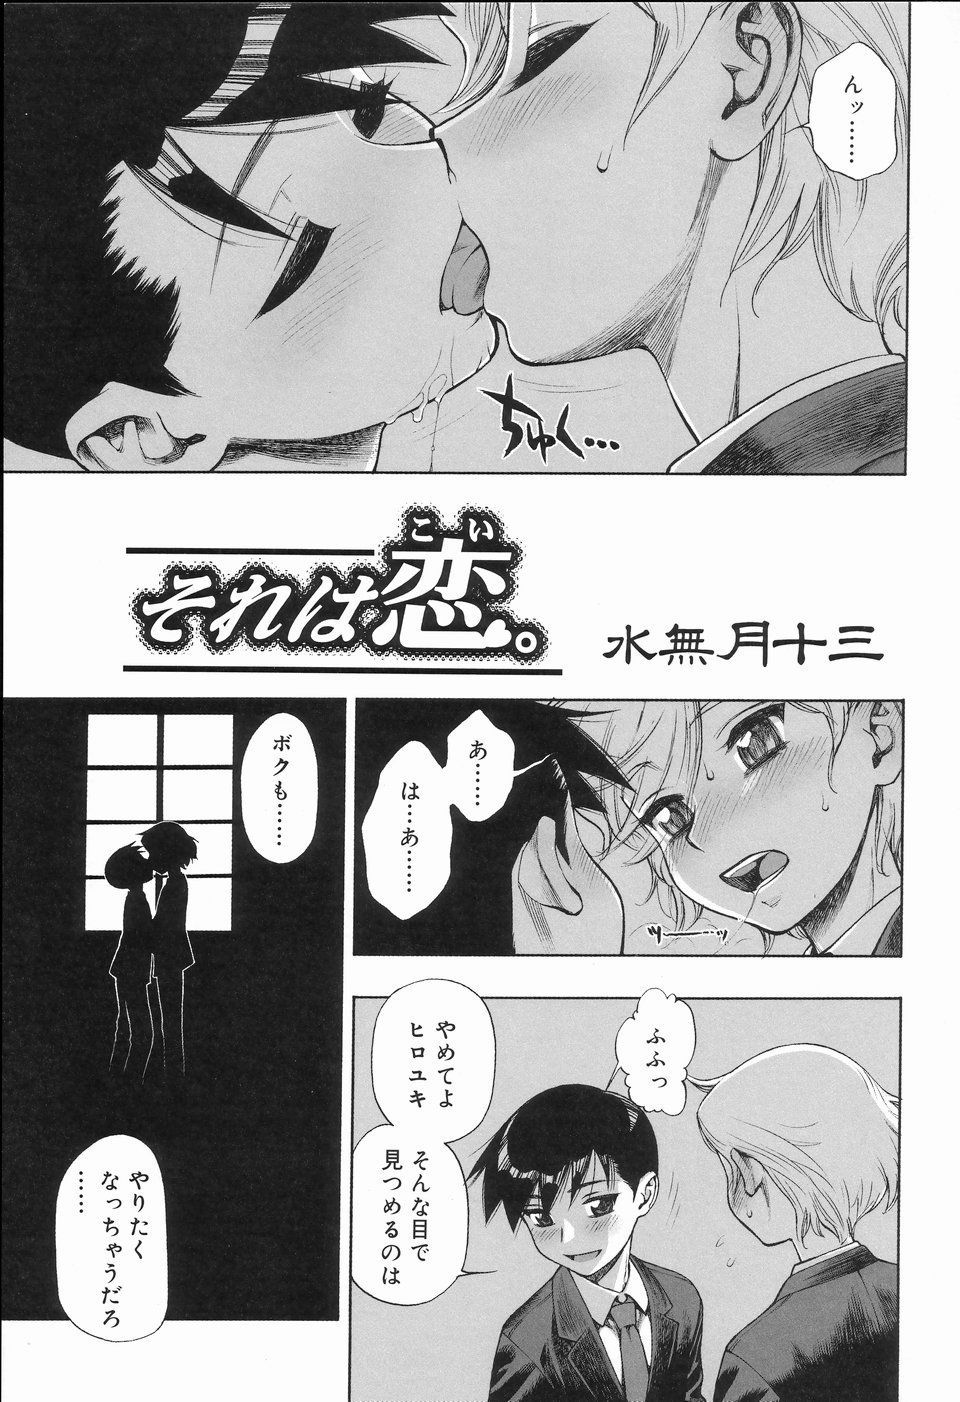 awfulboner:  WE FOUND IT its a oneshot by minazuki juuzoh from an anthology called koushoku shounen no susume and im in love